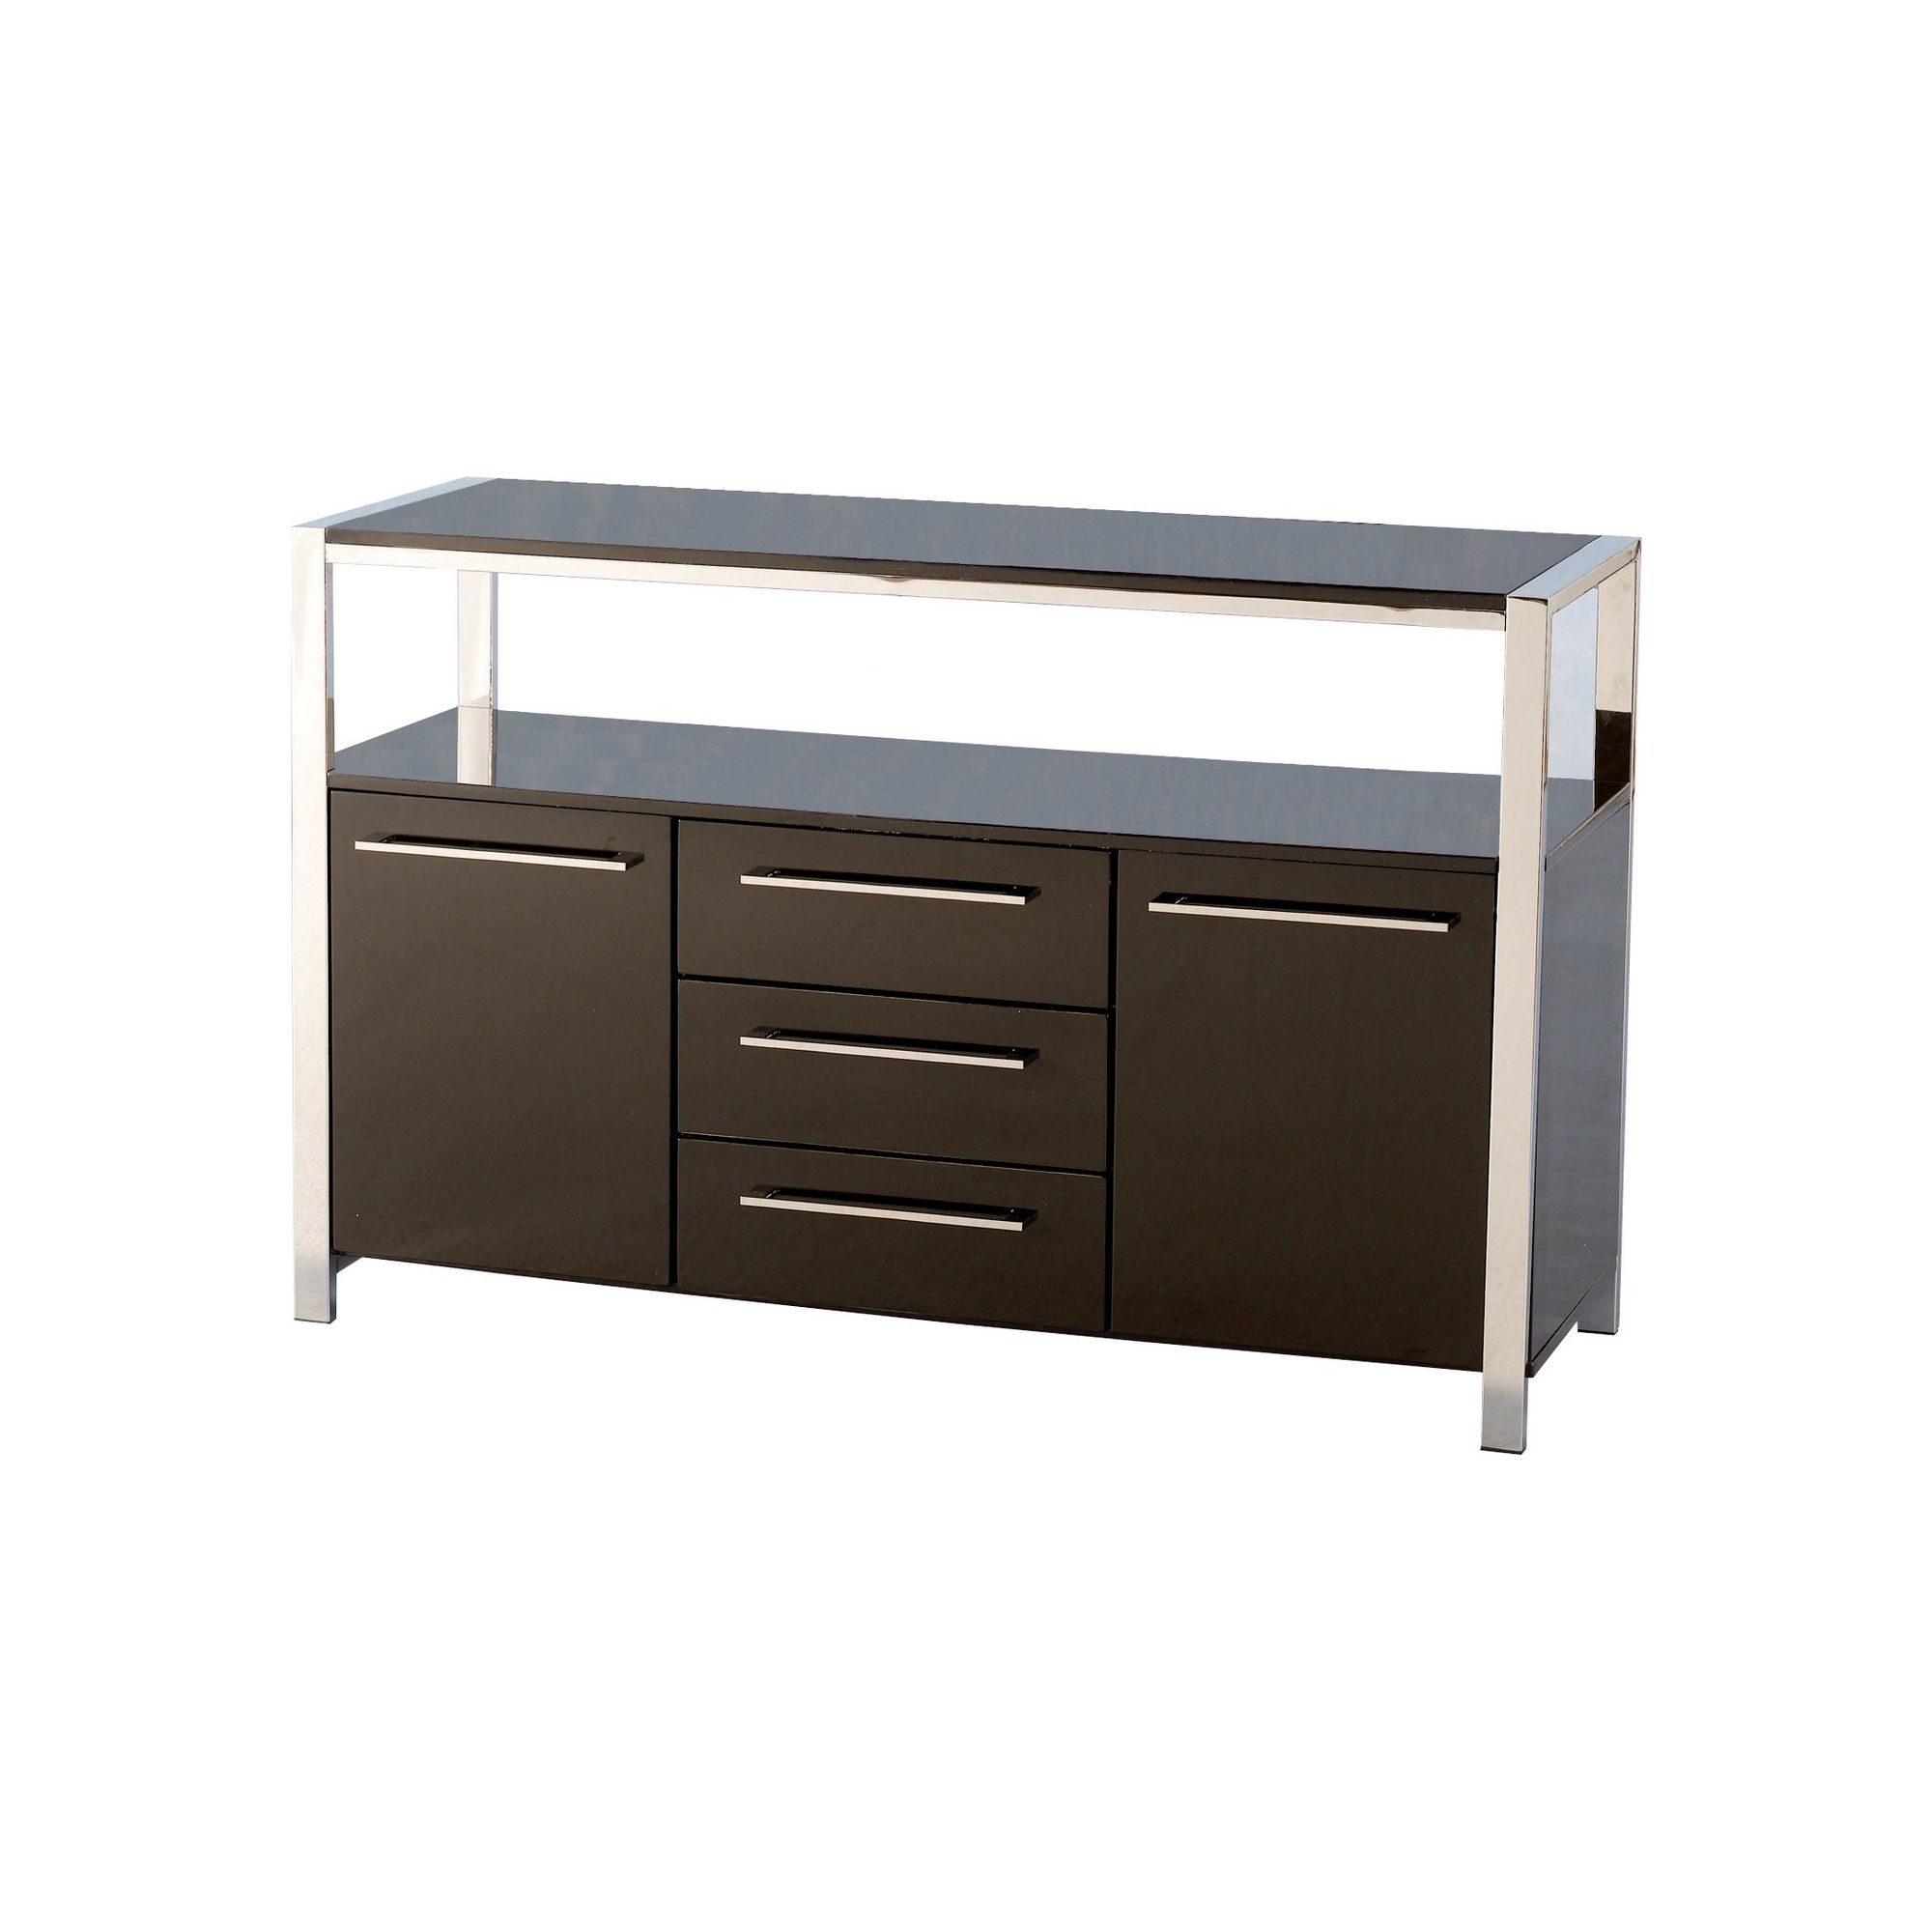 Home Essence Boston Sideboard in Black at Tesco Direct